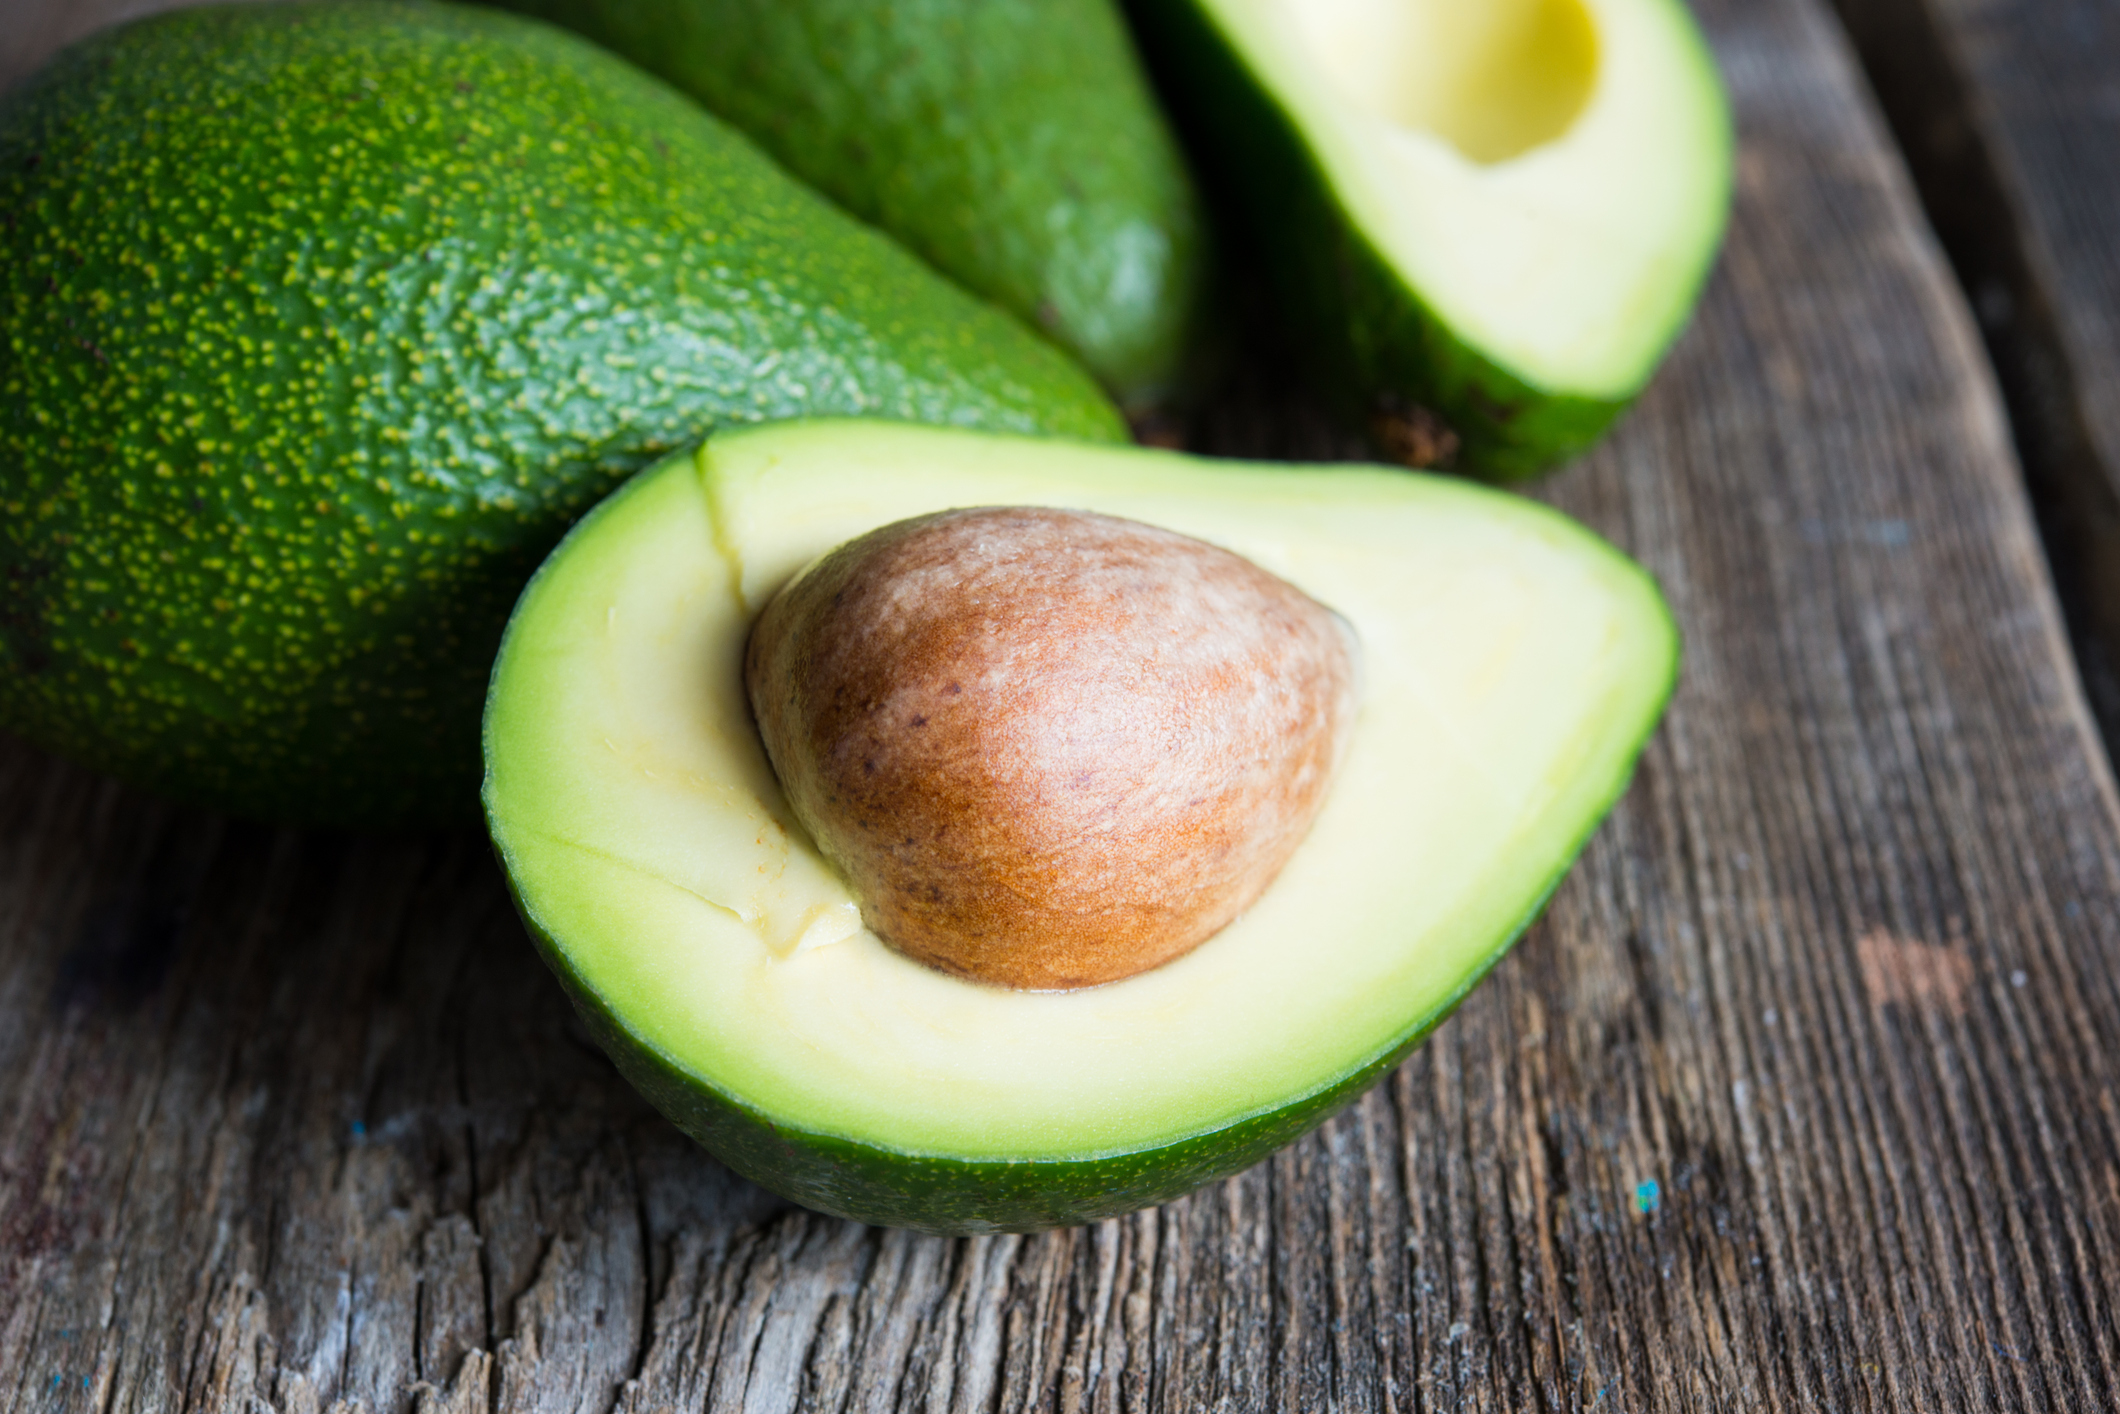 Food for Thought: Eat Avocados to Boost Testosterone